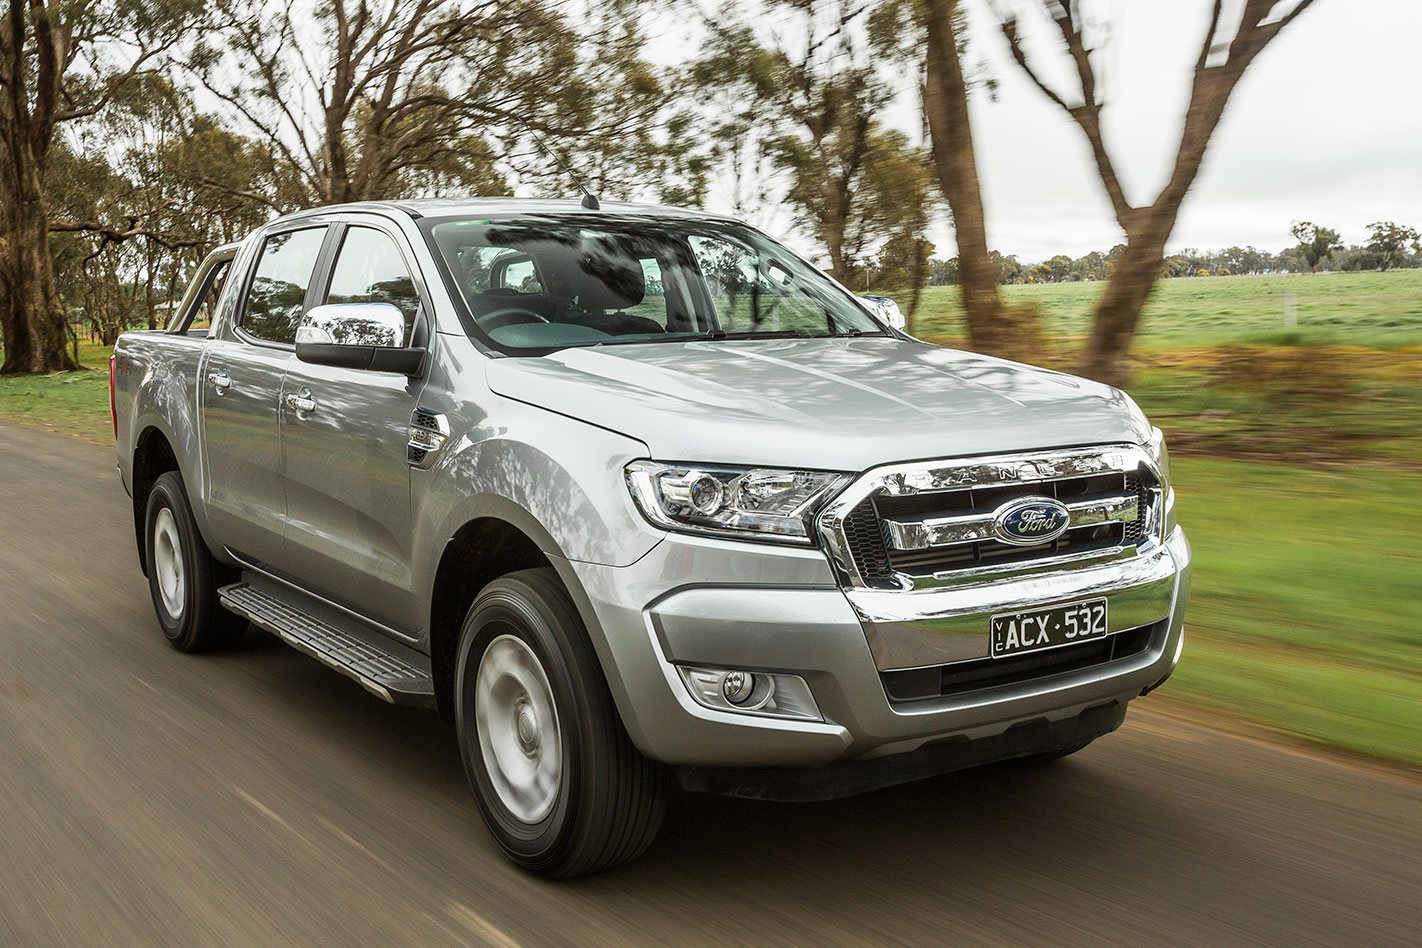 ford ranger review prices features and specifications whichcar. Black Bedroom Furniture Sets. Home Design Ideas